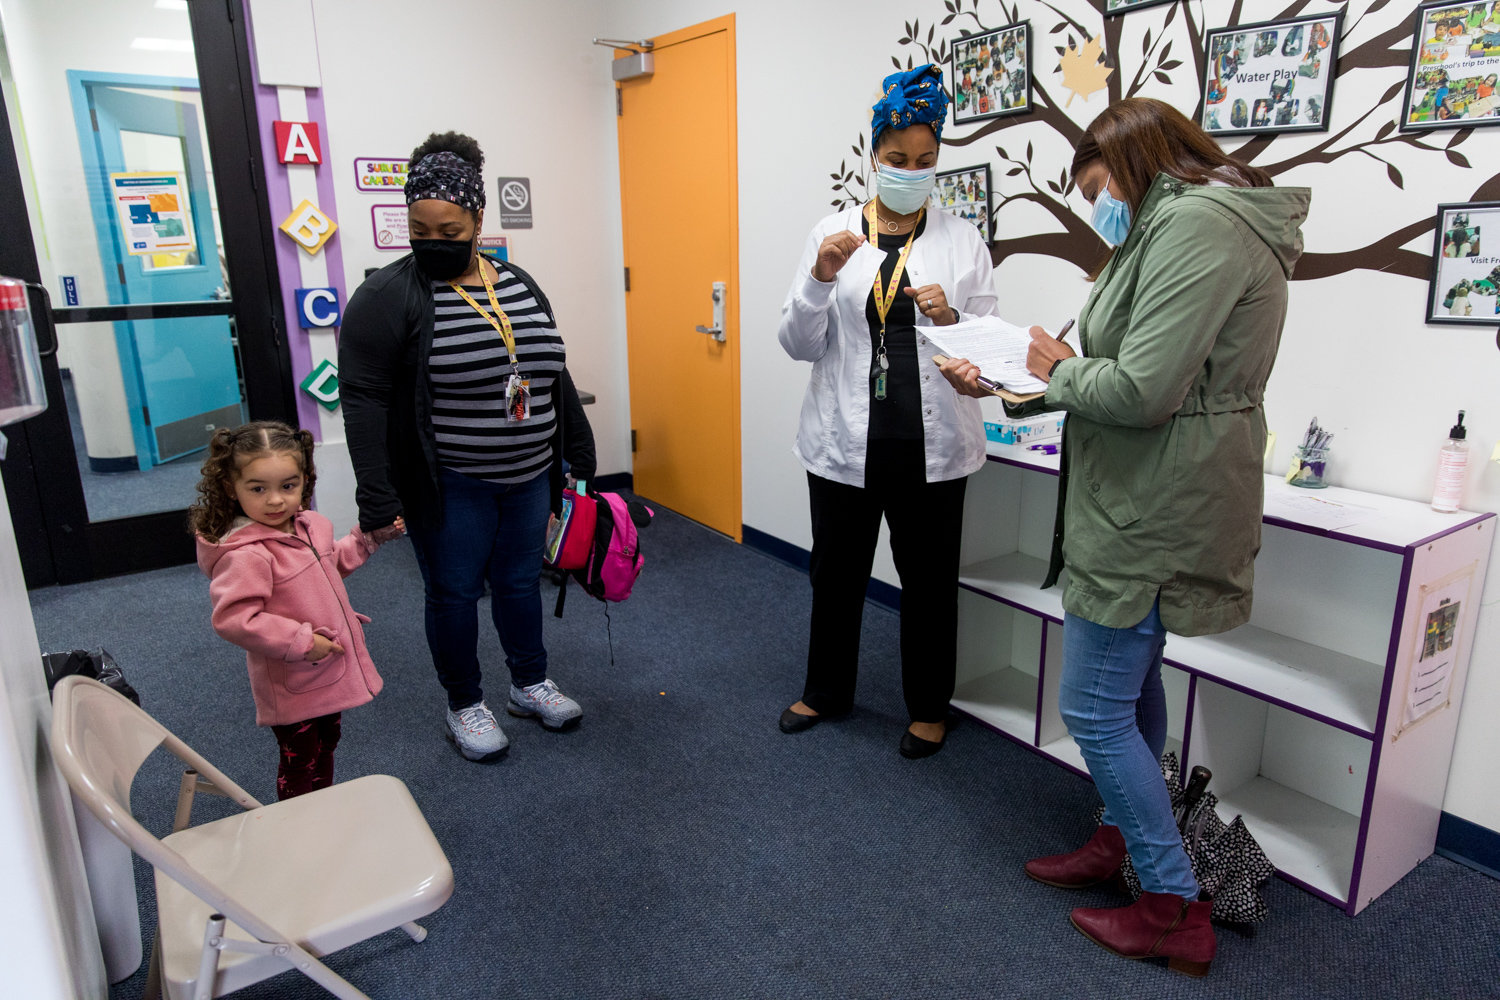 Roxana Vazquez, right, fills out a form while picking up her daughter Mia from The Learning Experience. It's at that Riverdale Avenue facility where Mia receives free care by day while Vazquez works as a clinical social worker in Westchester County.